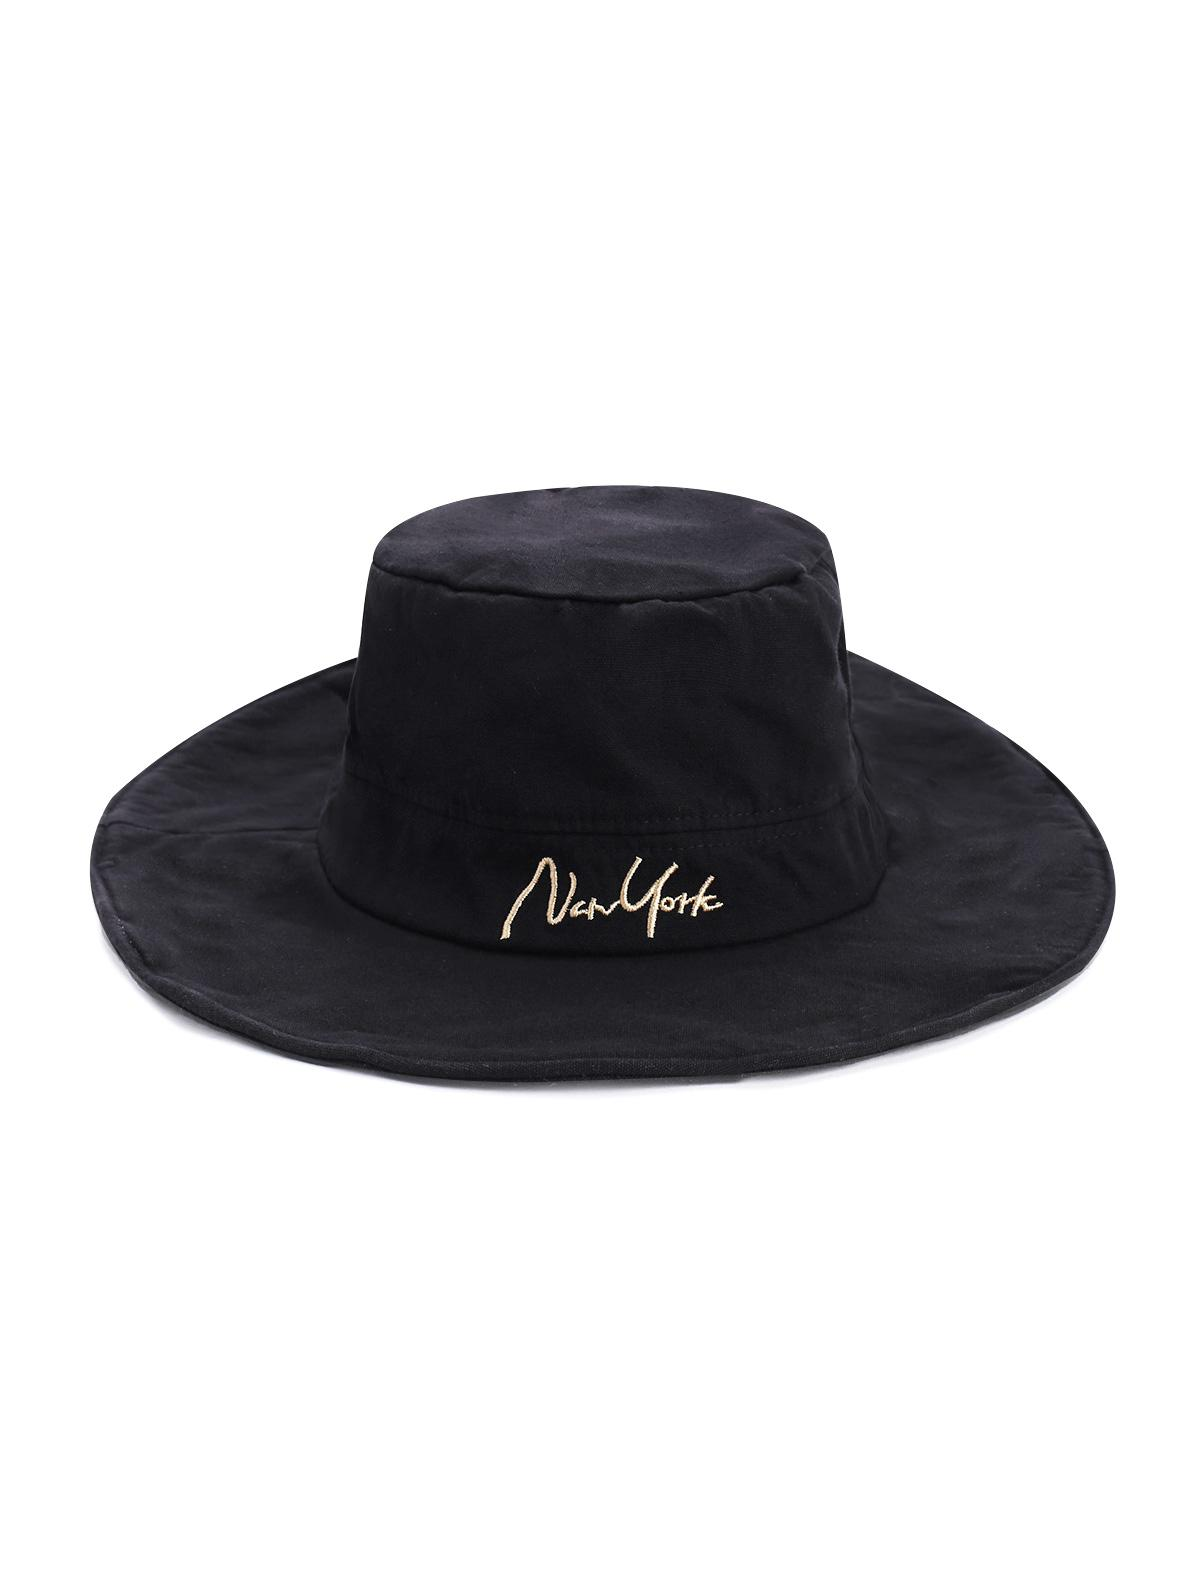 Letter Embroidery Outdoor Bucket Hat